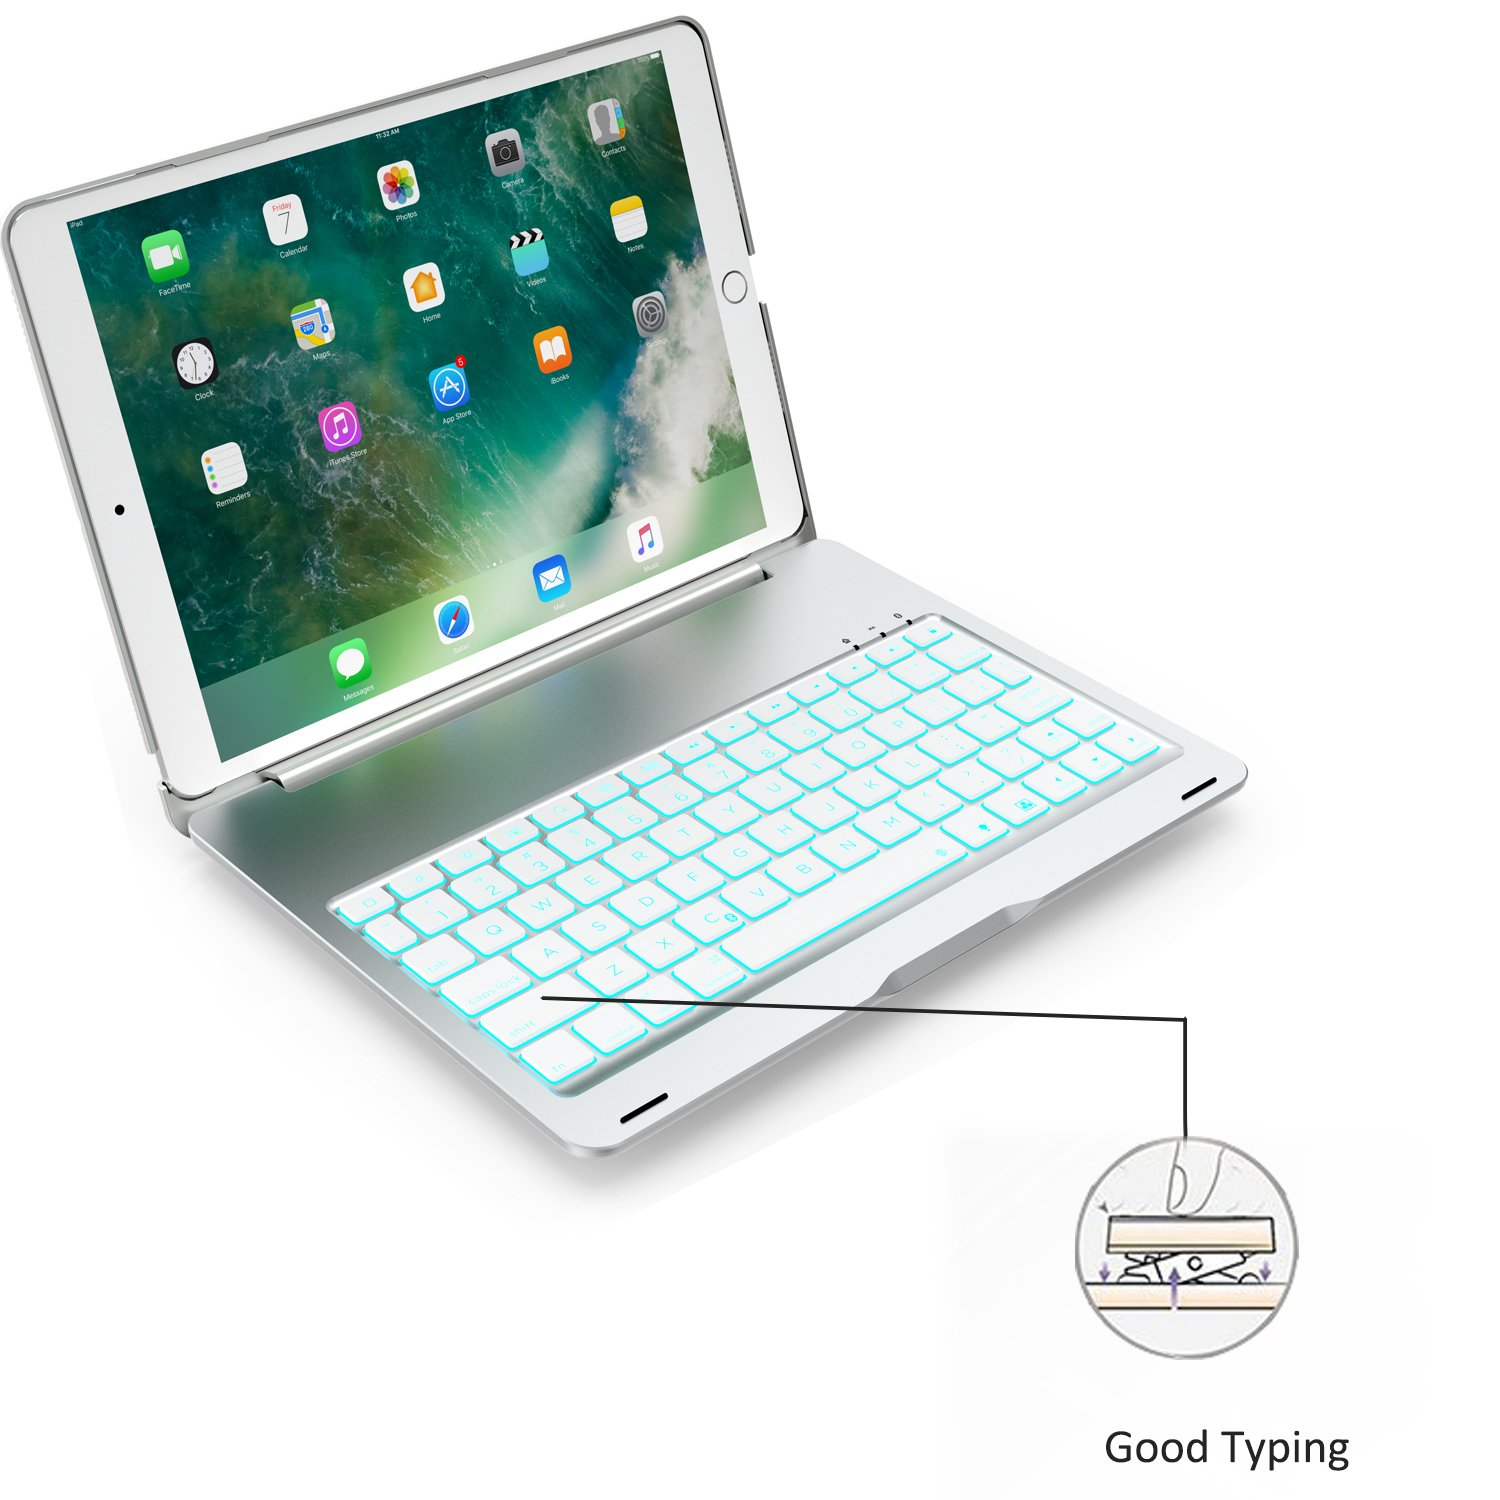 SZILBZ New iPad Pro 10.5 Keyboard Case.LED 7 Color Backlit.Ultra Silm Hard Shell Aluminum Alloy Folio Stand Cover for iPad pro 10.5 Inch(model(A1701/A1709) (Silver)